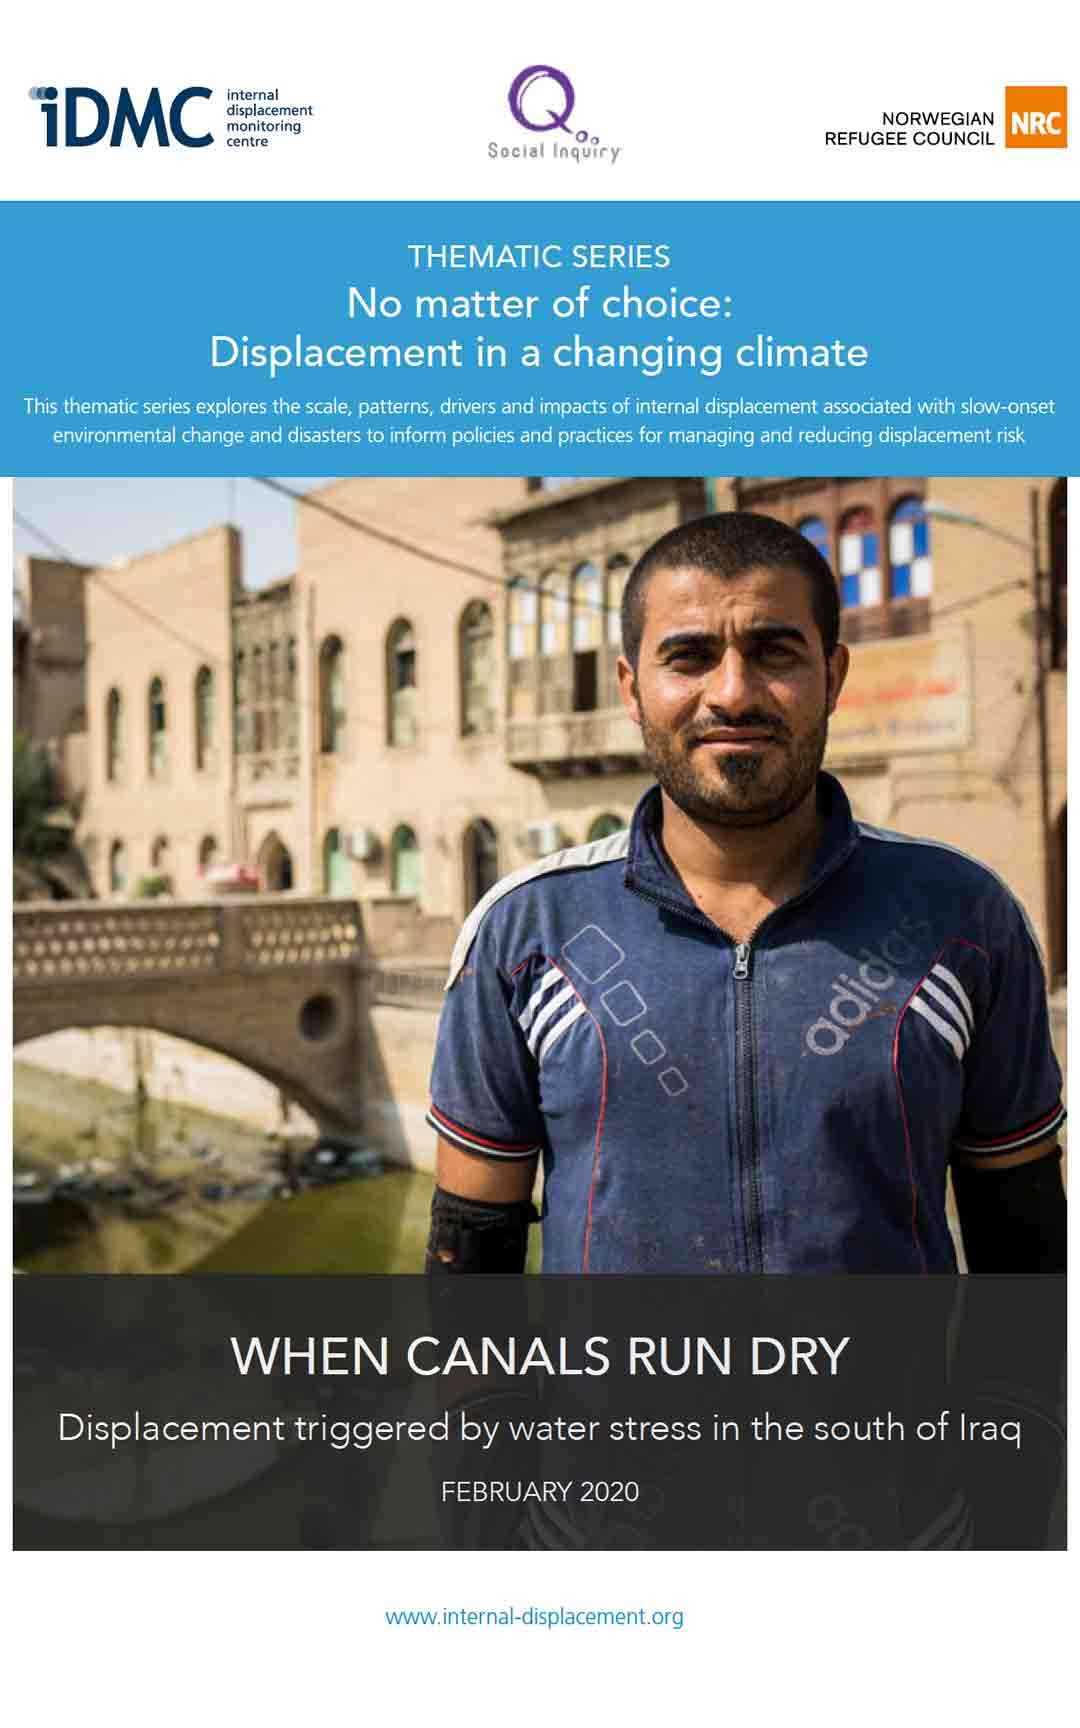 When canals run dry: Displacement triggered by water stress in the south of Iraq